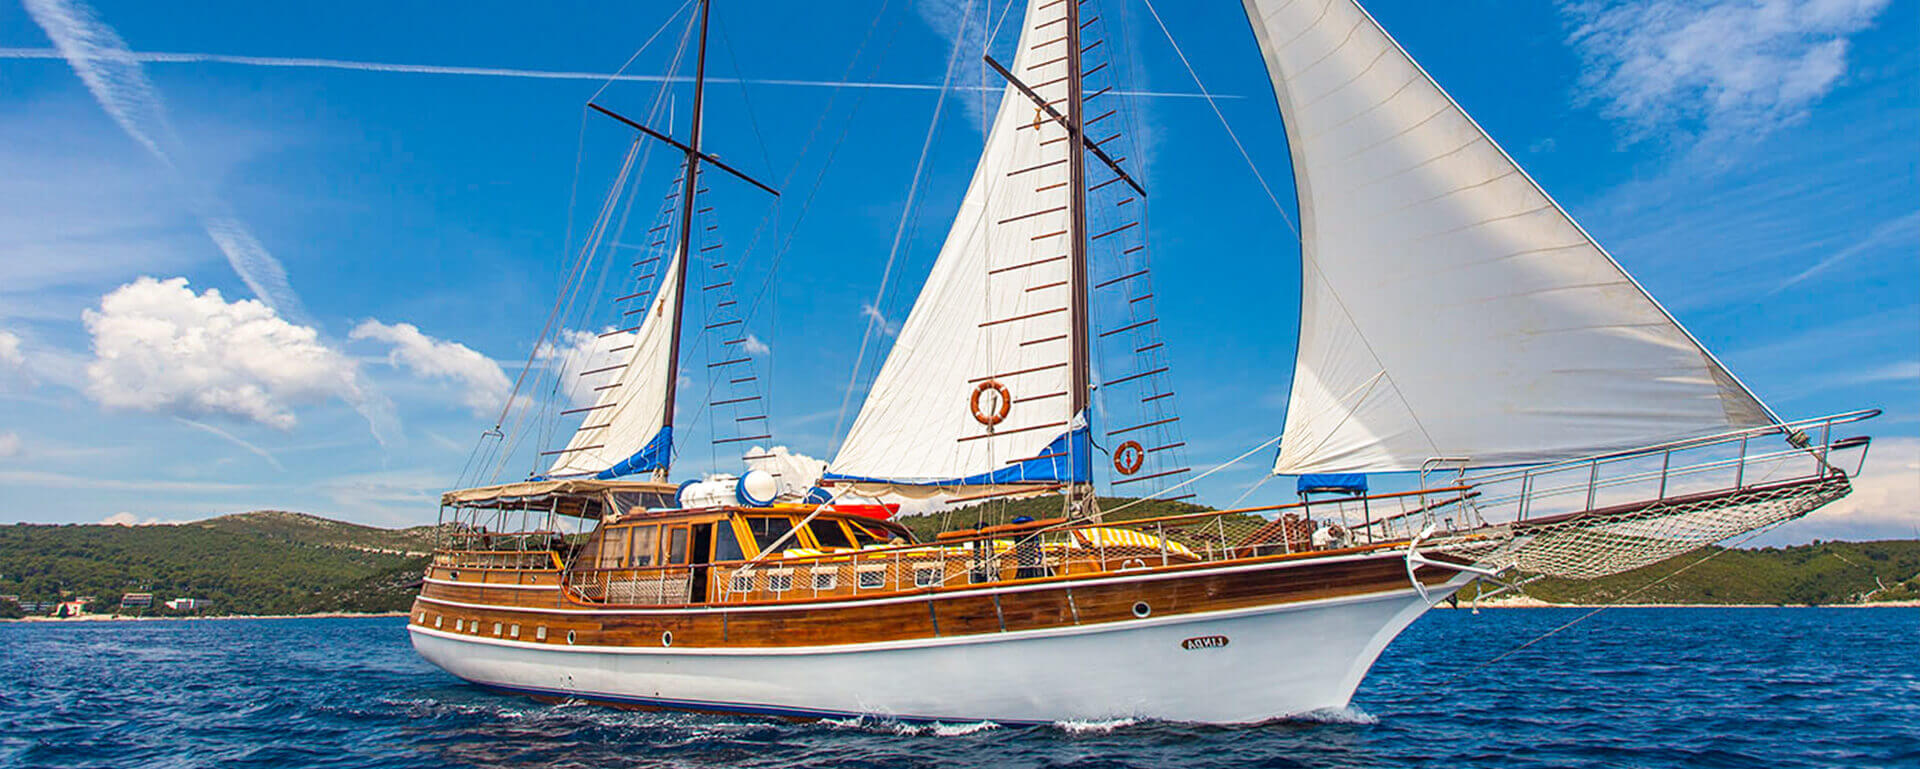 Corsario Luxury Sailing Yacht